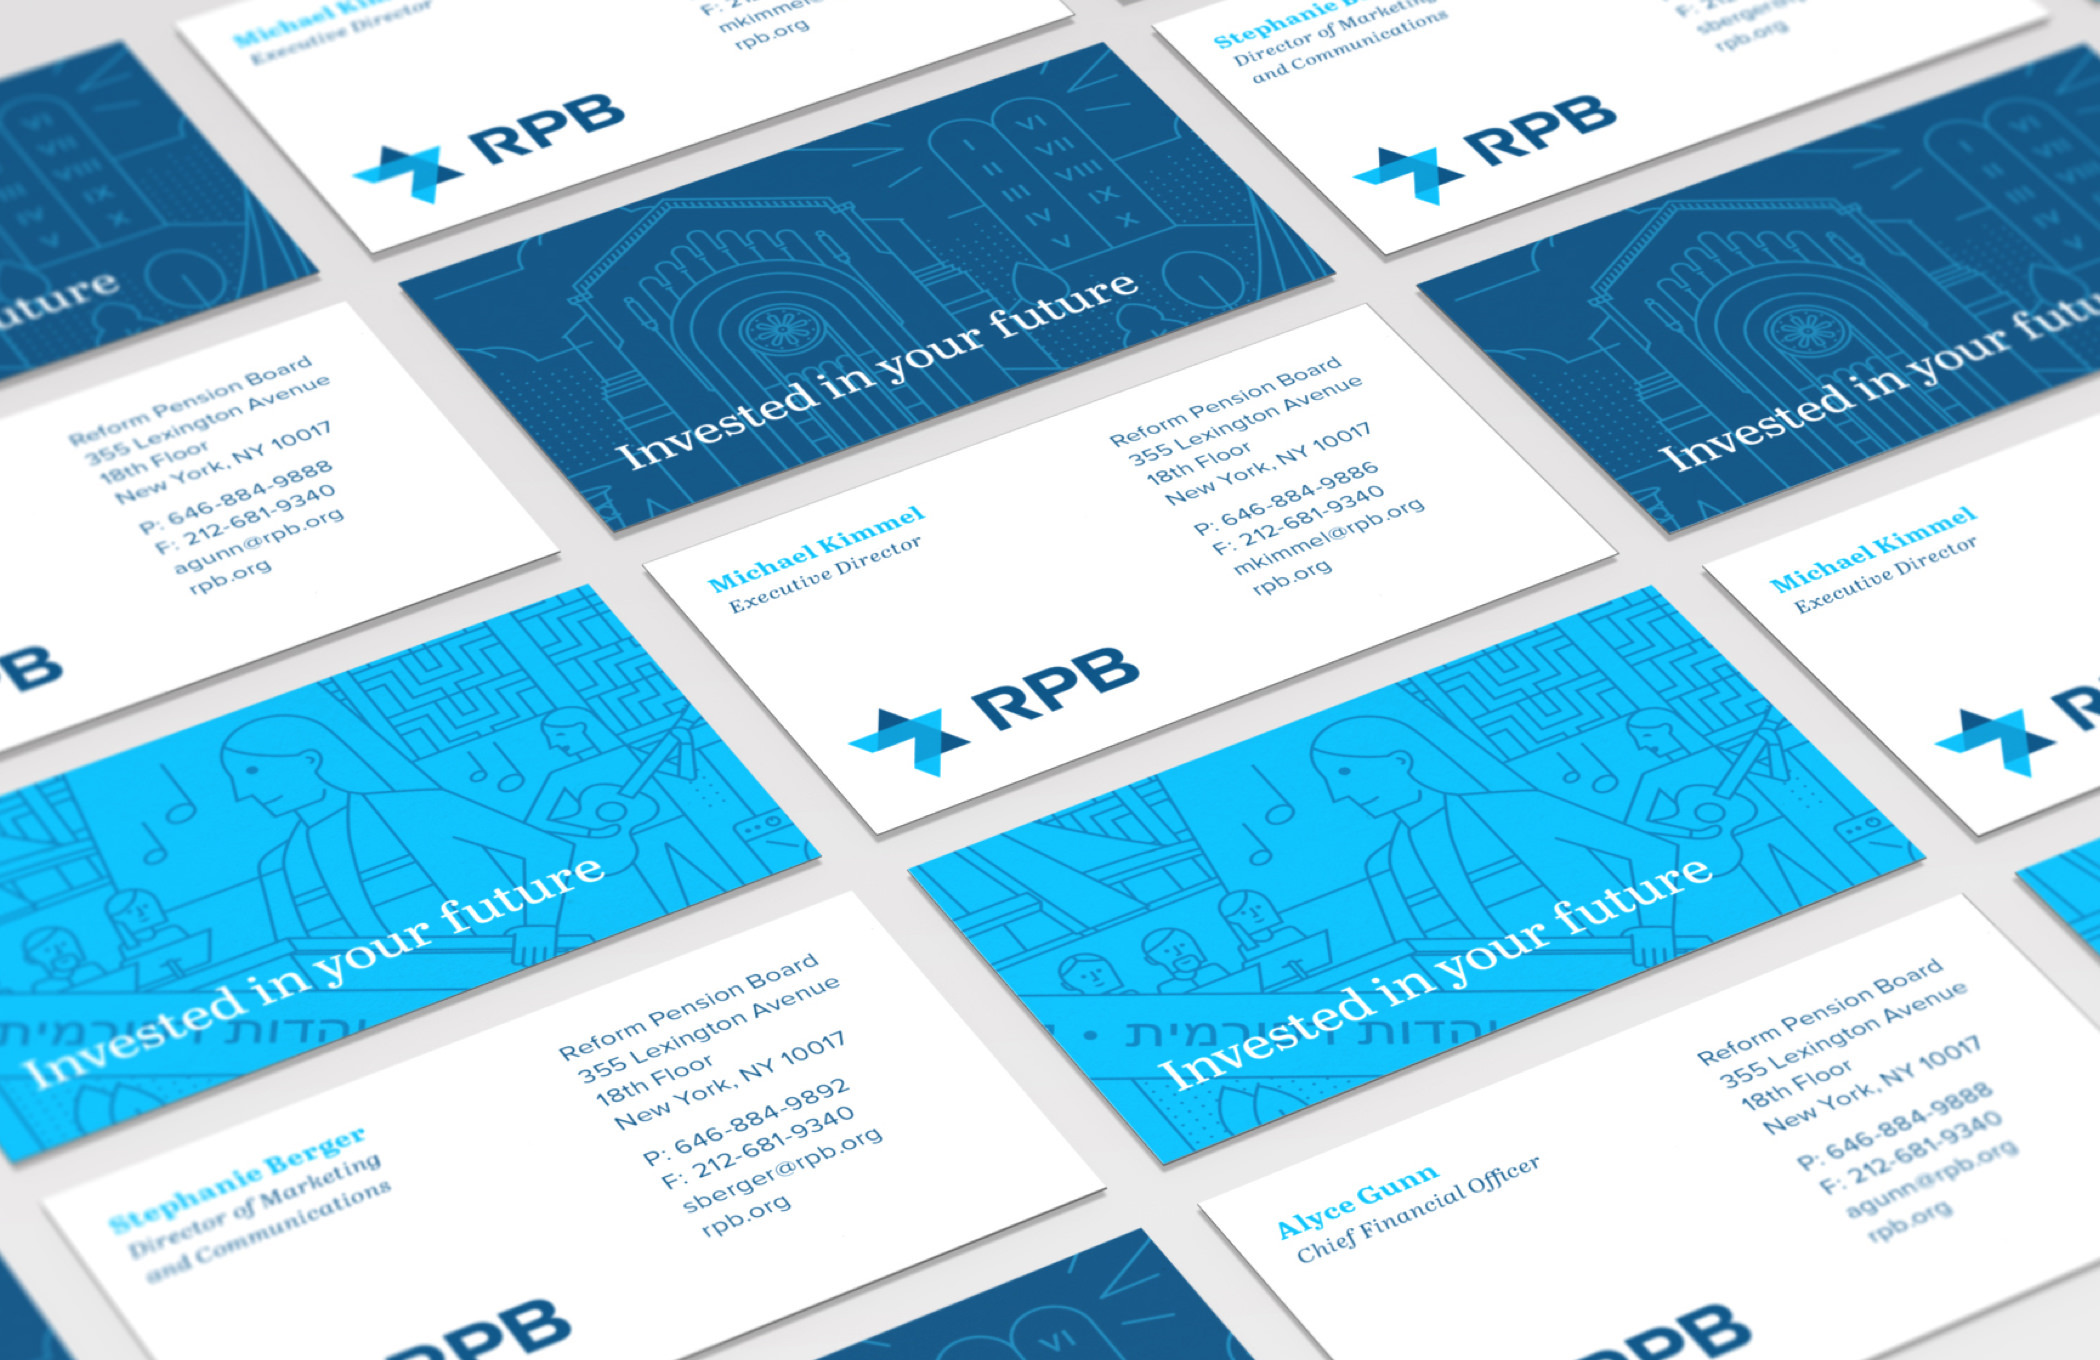 """The front and back of several illustrated RPB business cards with the RPB logo and the phrase """"Invested in your future."""""""